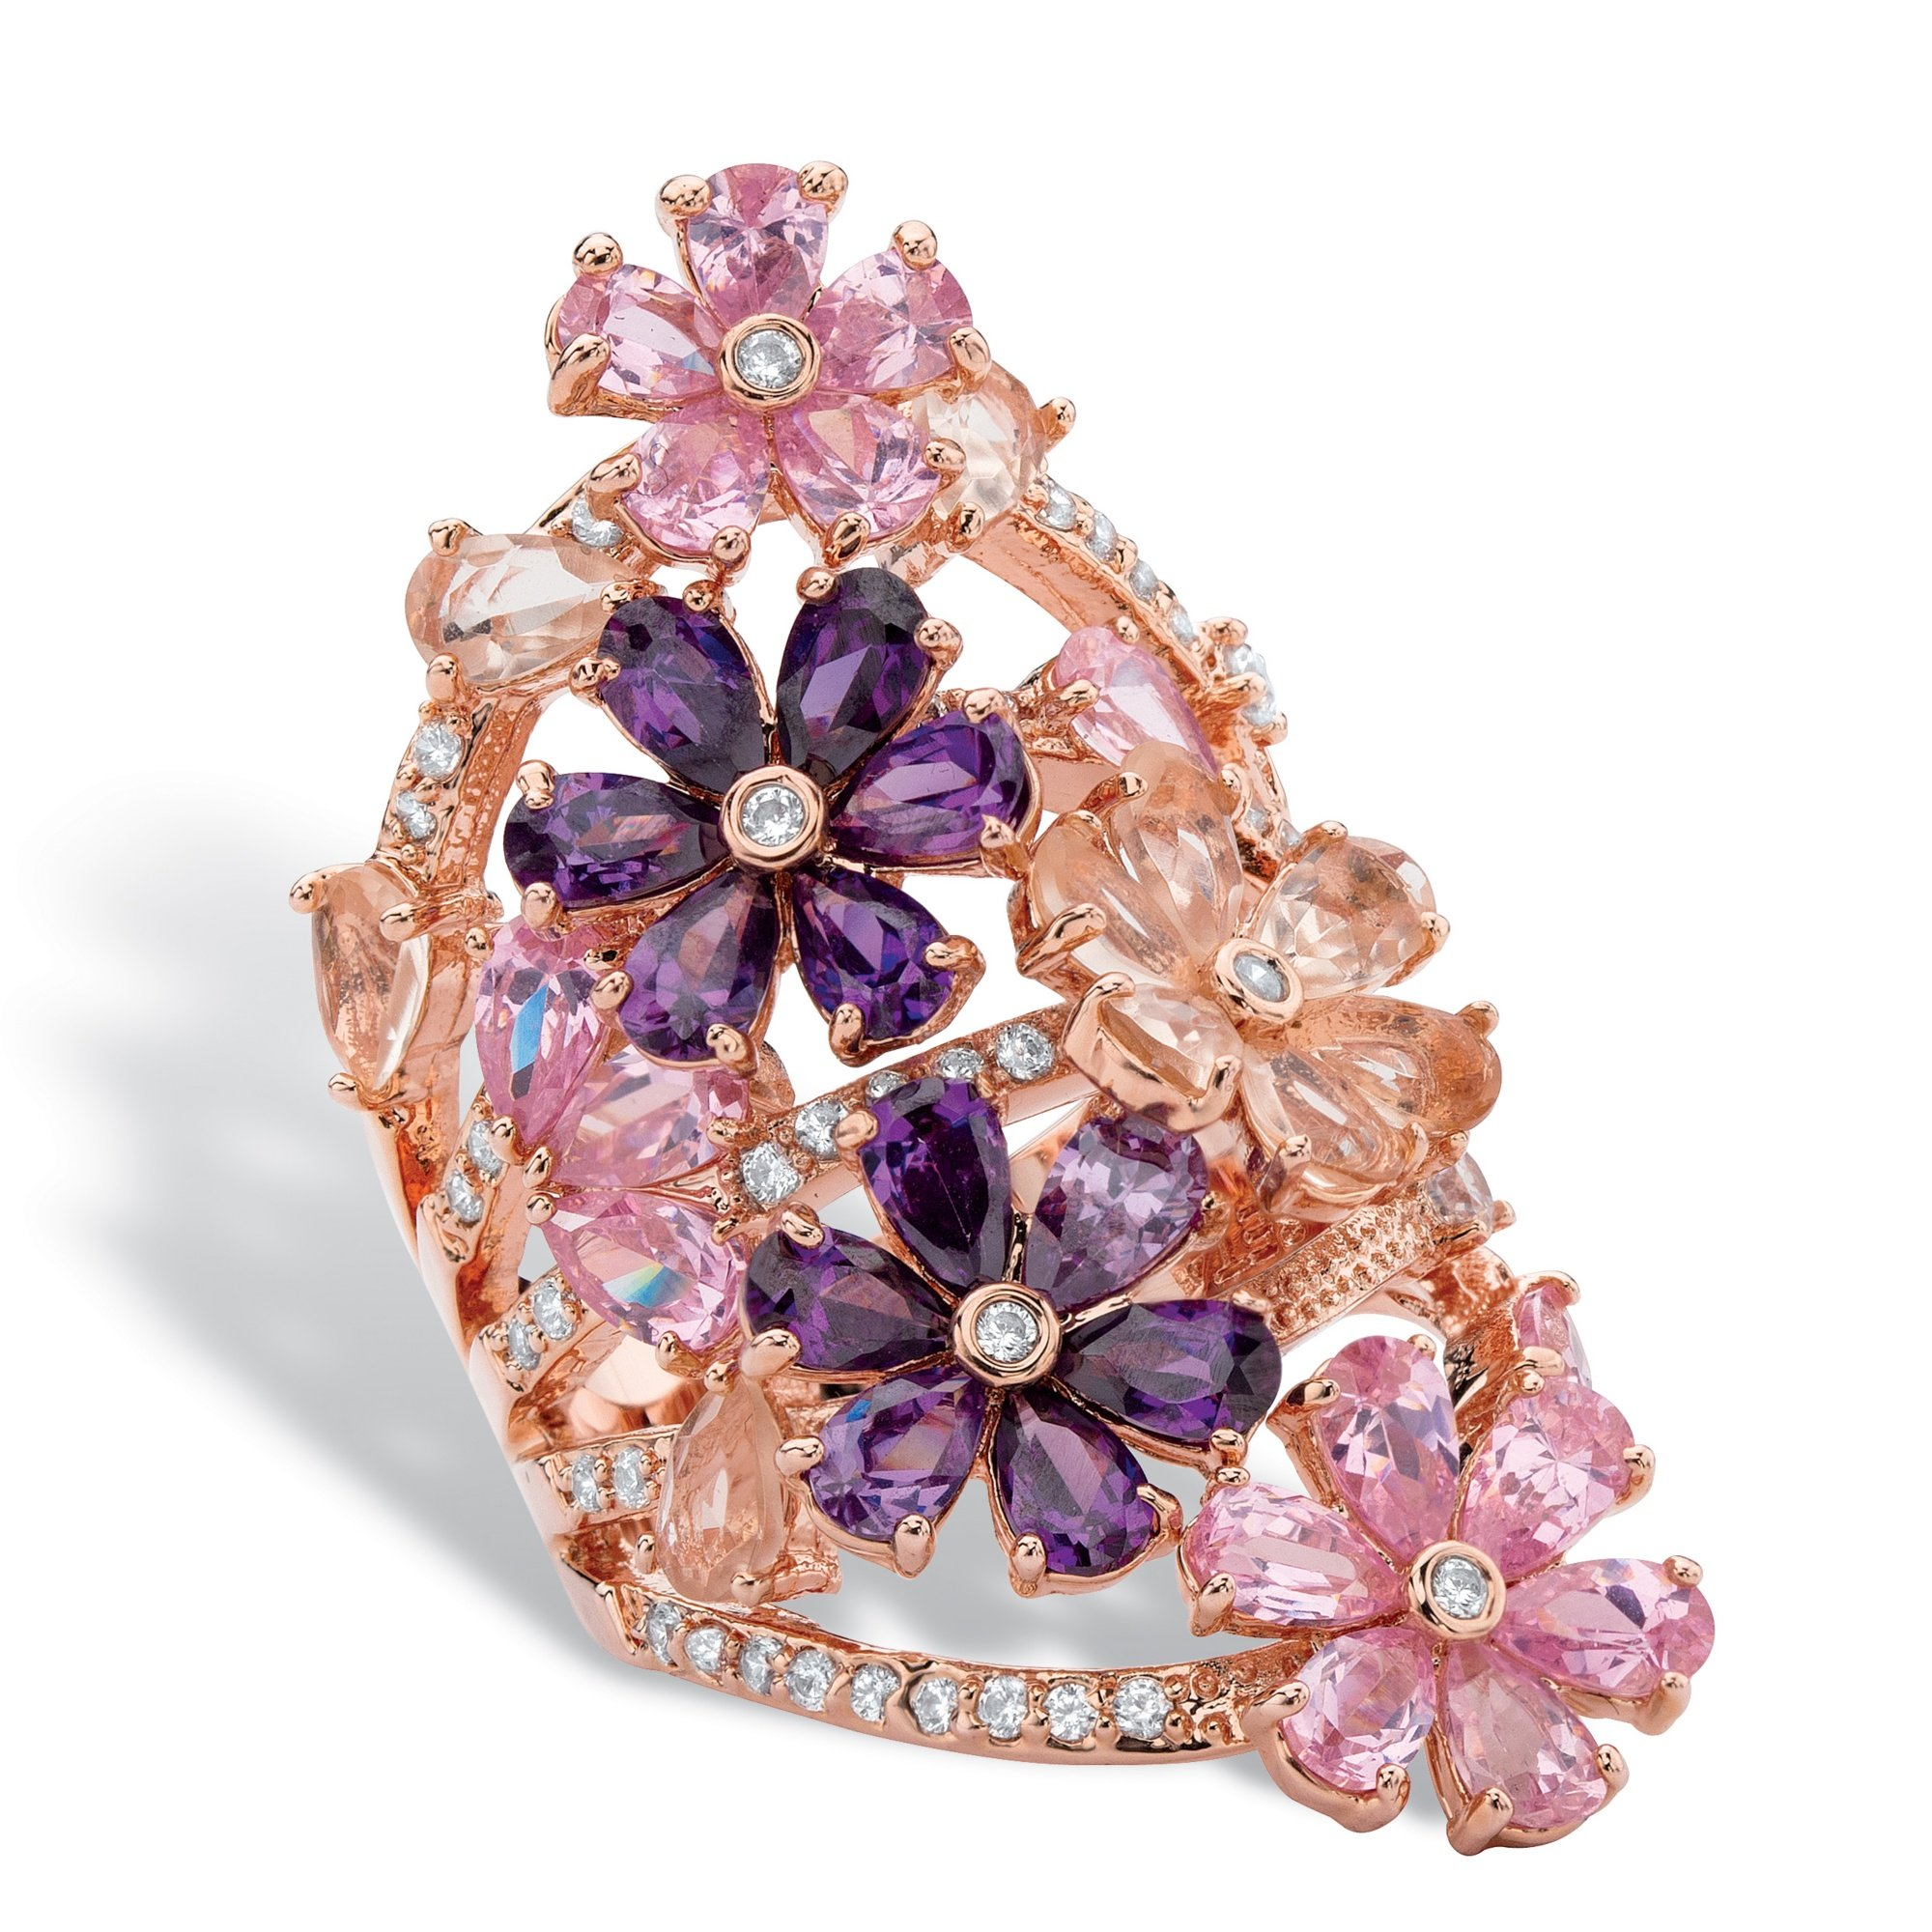 Palm Beach Jewelry Rose Gold-plated Pear Cut Glass Cubic Zirconia Pink Purple Flower Cluster Ring Size 8